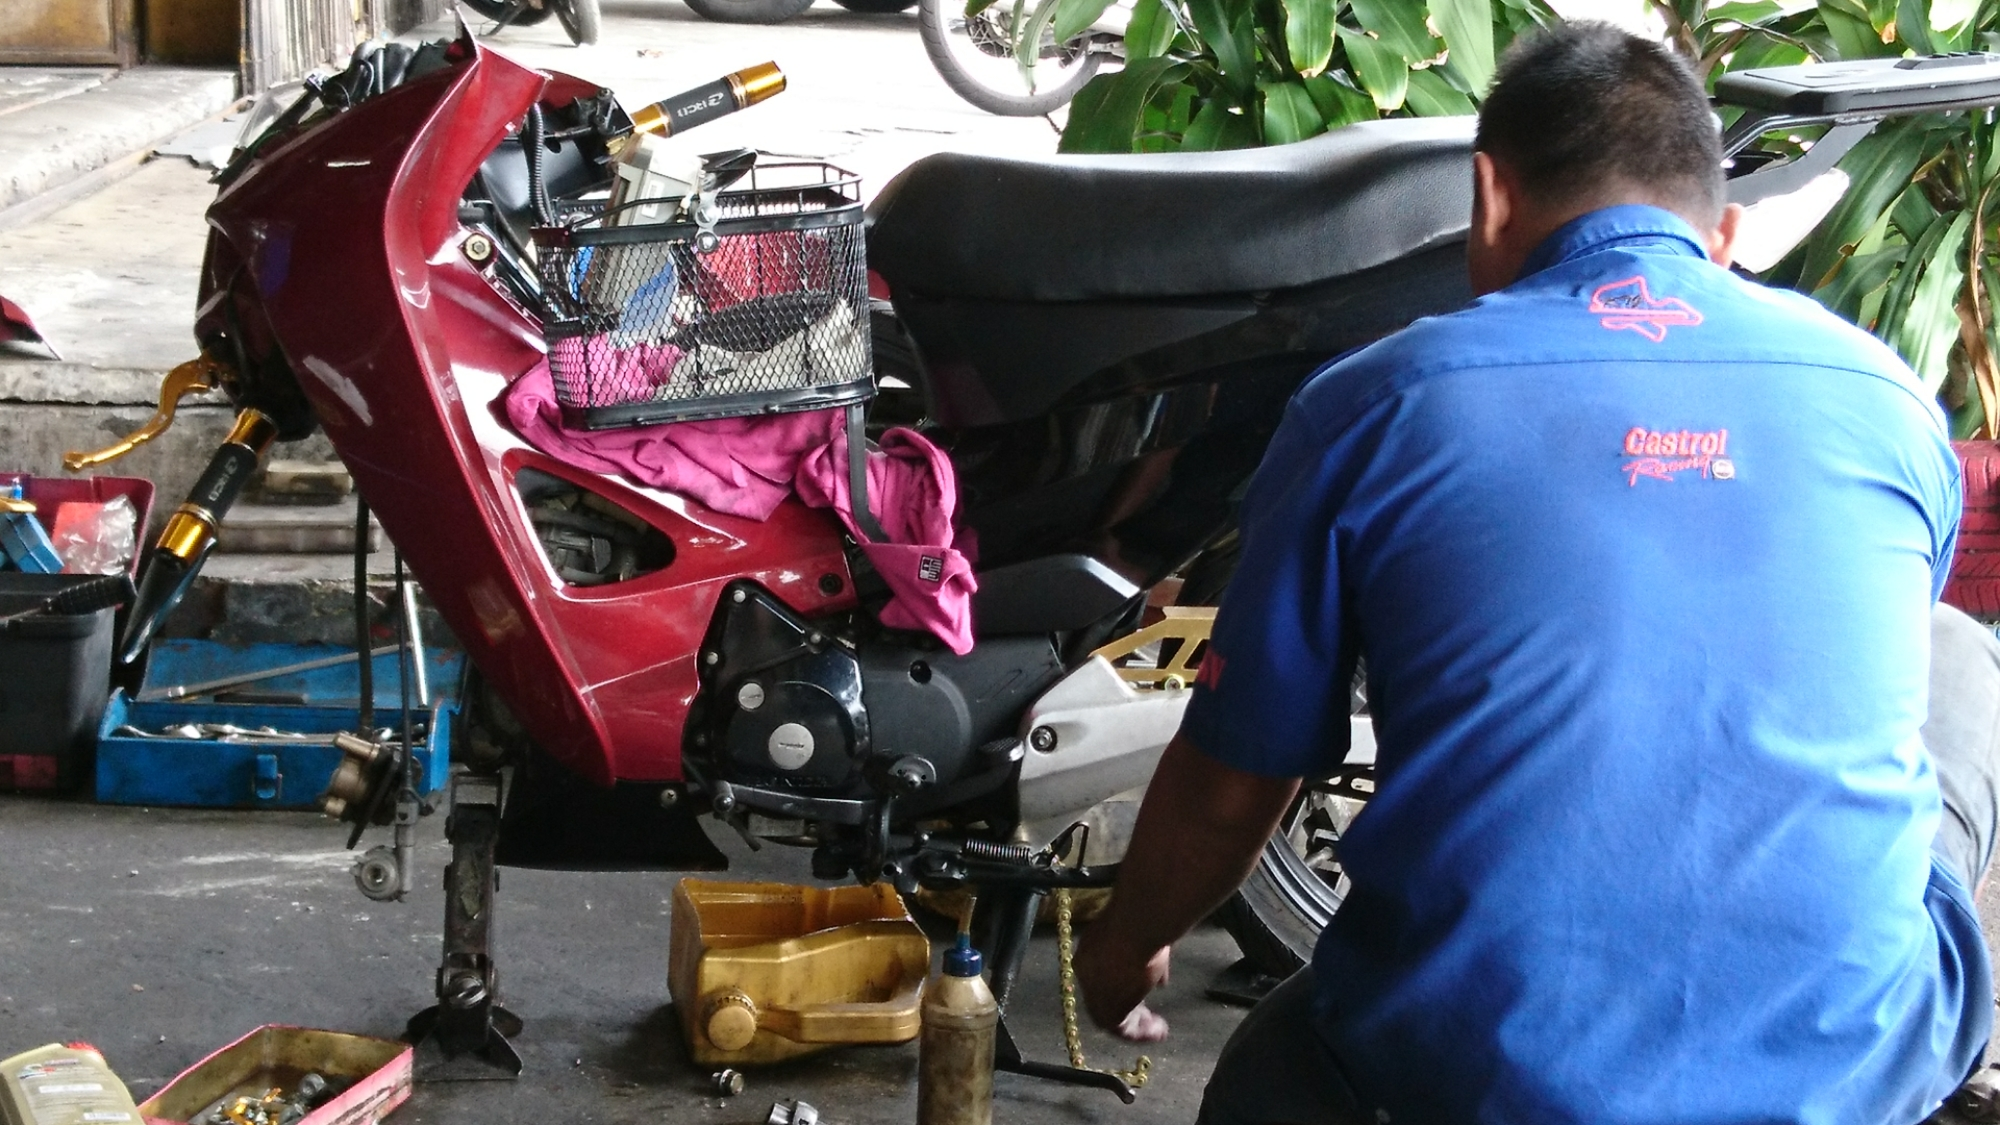 Cheap motorcycle repair in JB – Johor Bahru | Gintai_昇泰